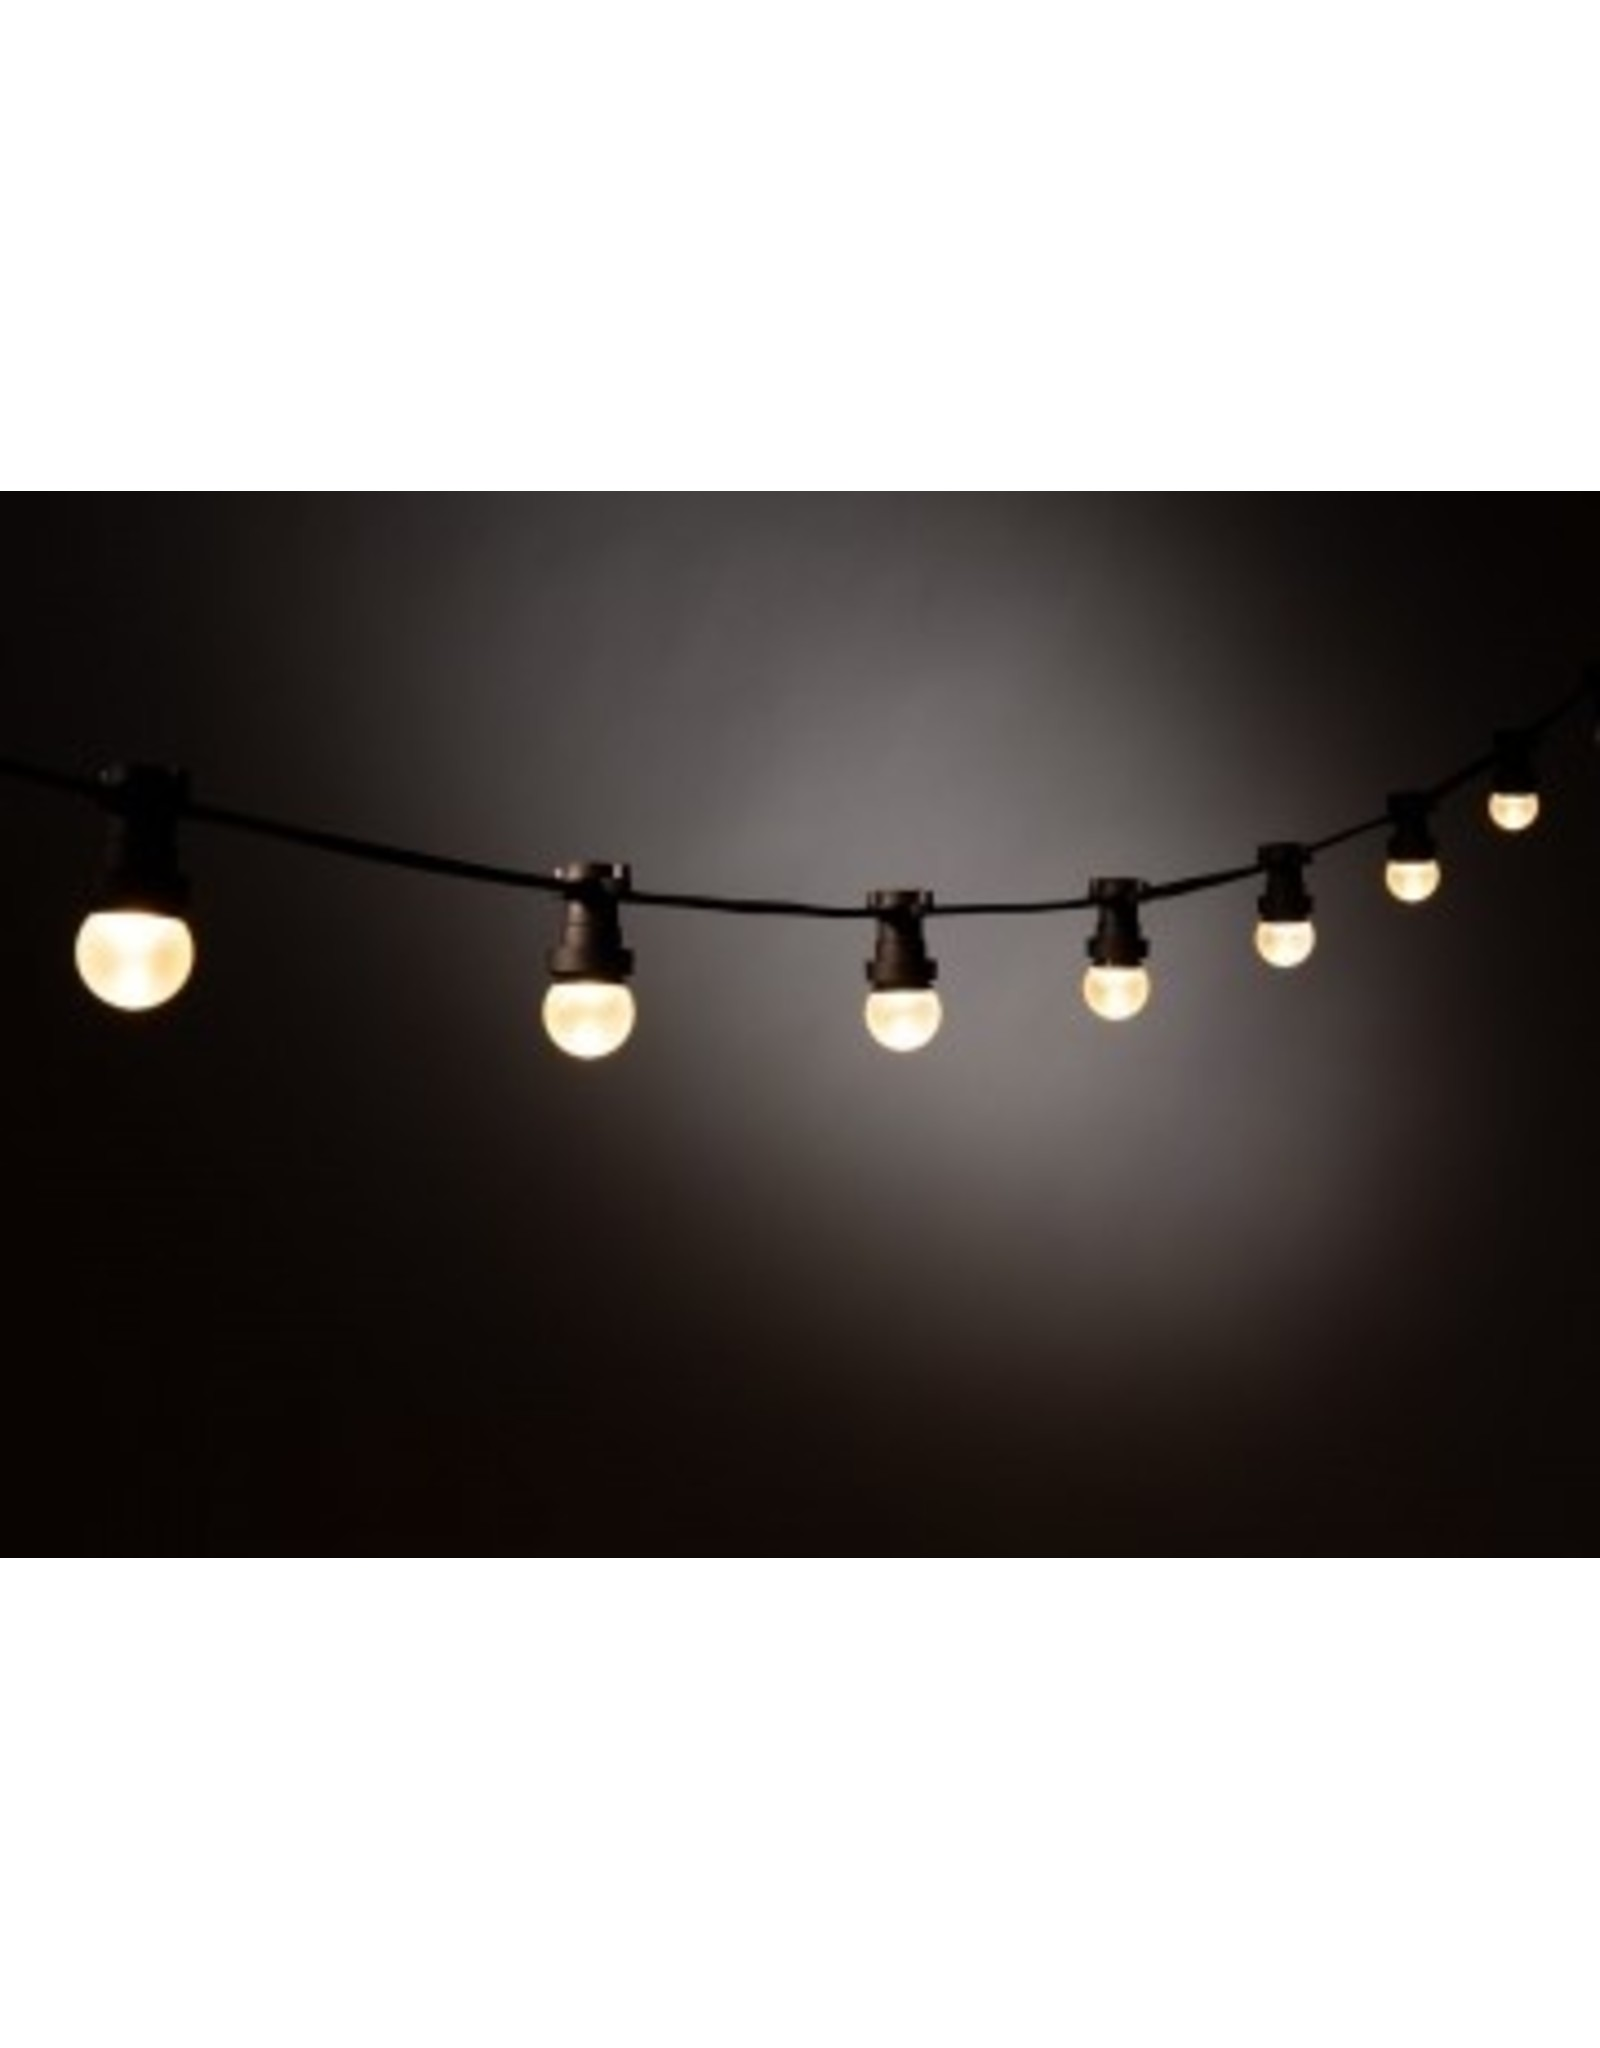 Lights guirlande Lichtslinger outdoor, 35m met 70 fittingen, zwarte kabel + startkabel